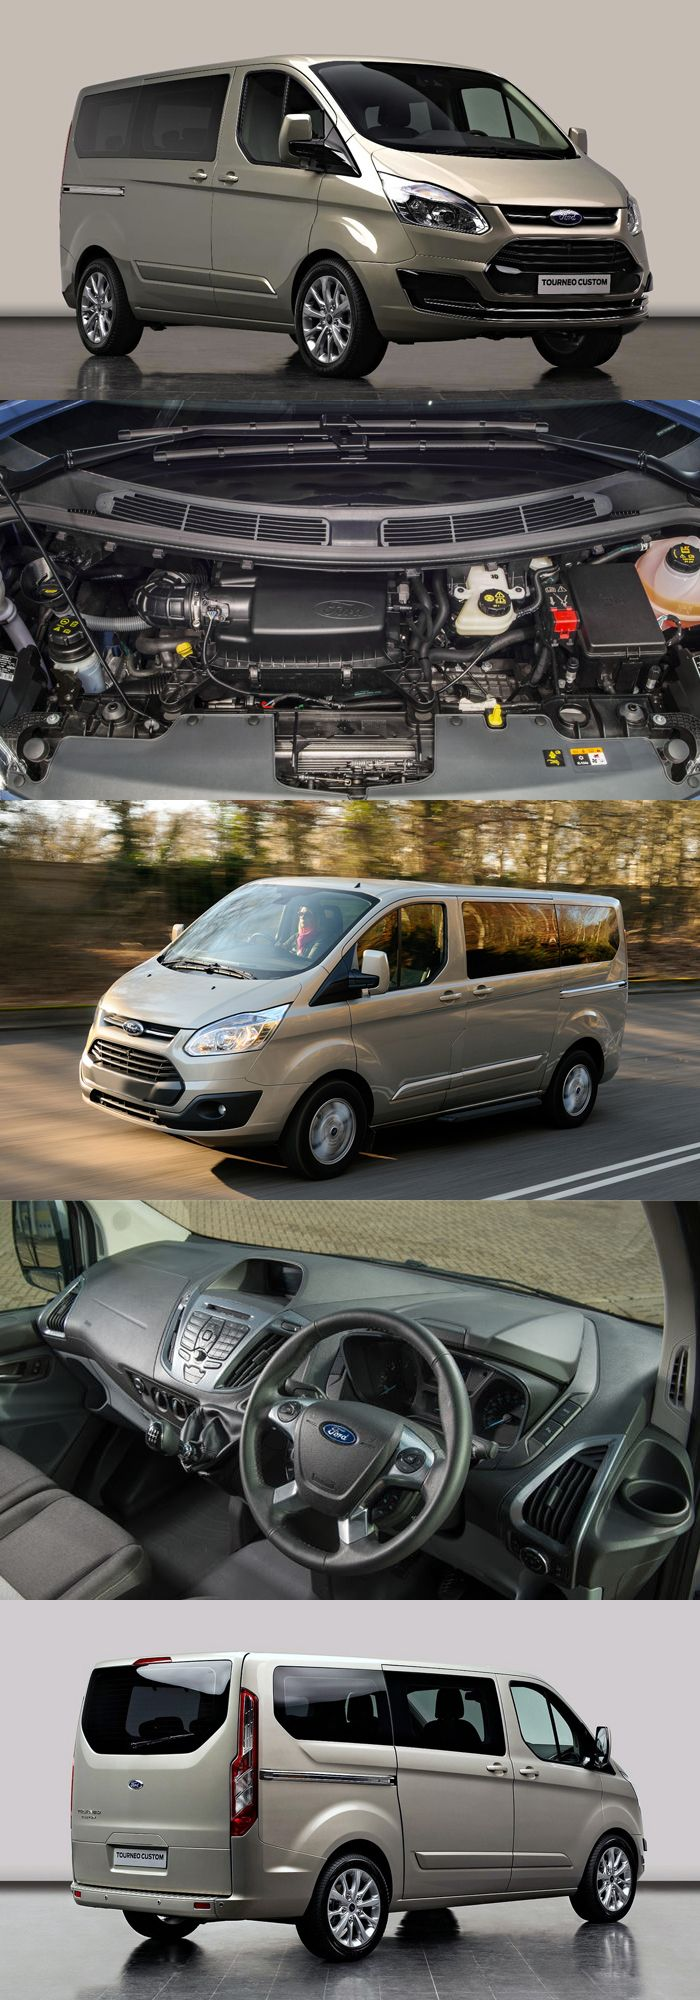 ford transit 2 0 engine review for more read andrewfordcity wordpress com